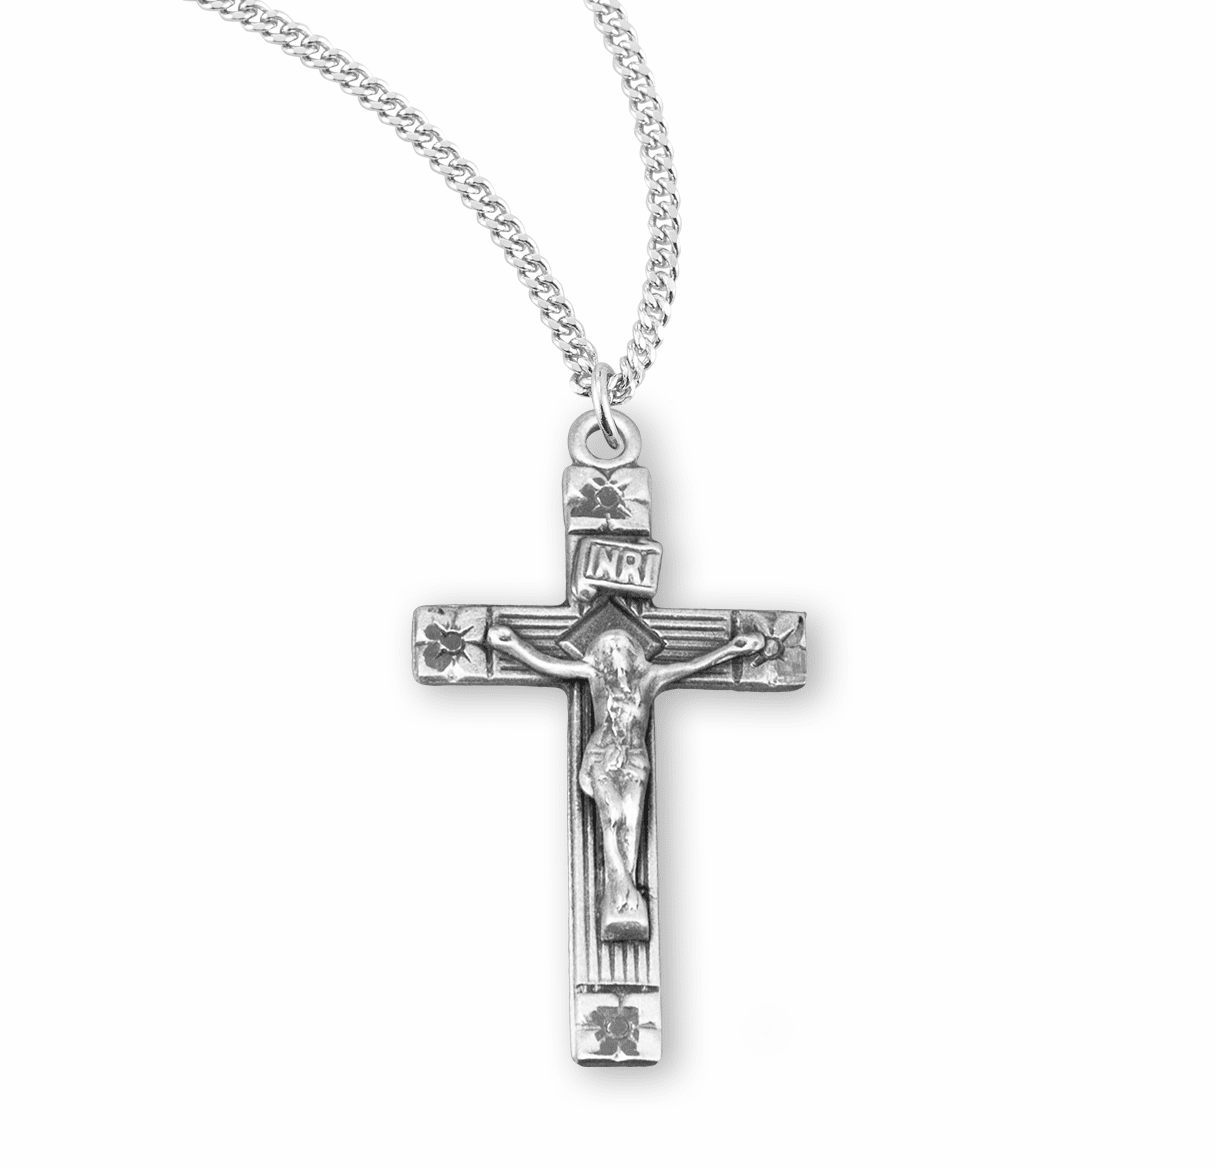 HMH Religious Flower Tipped Sterling Silver Crucifix with Chain